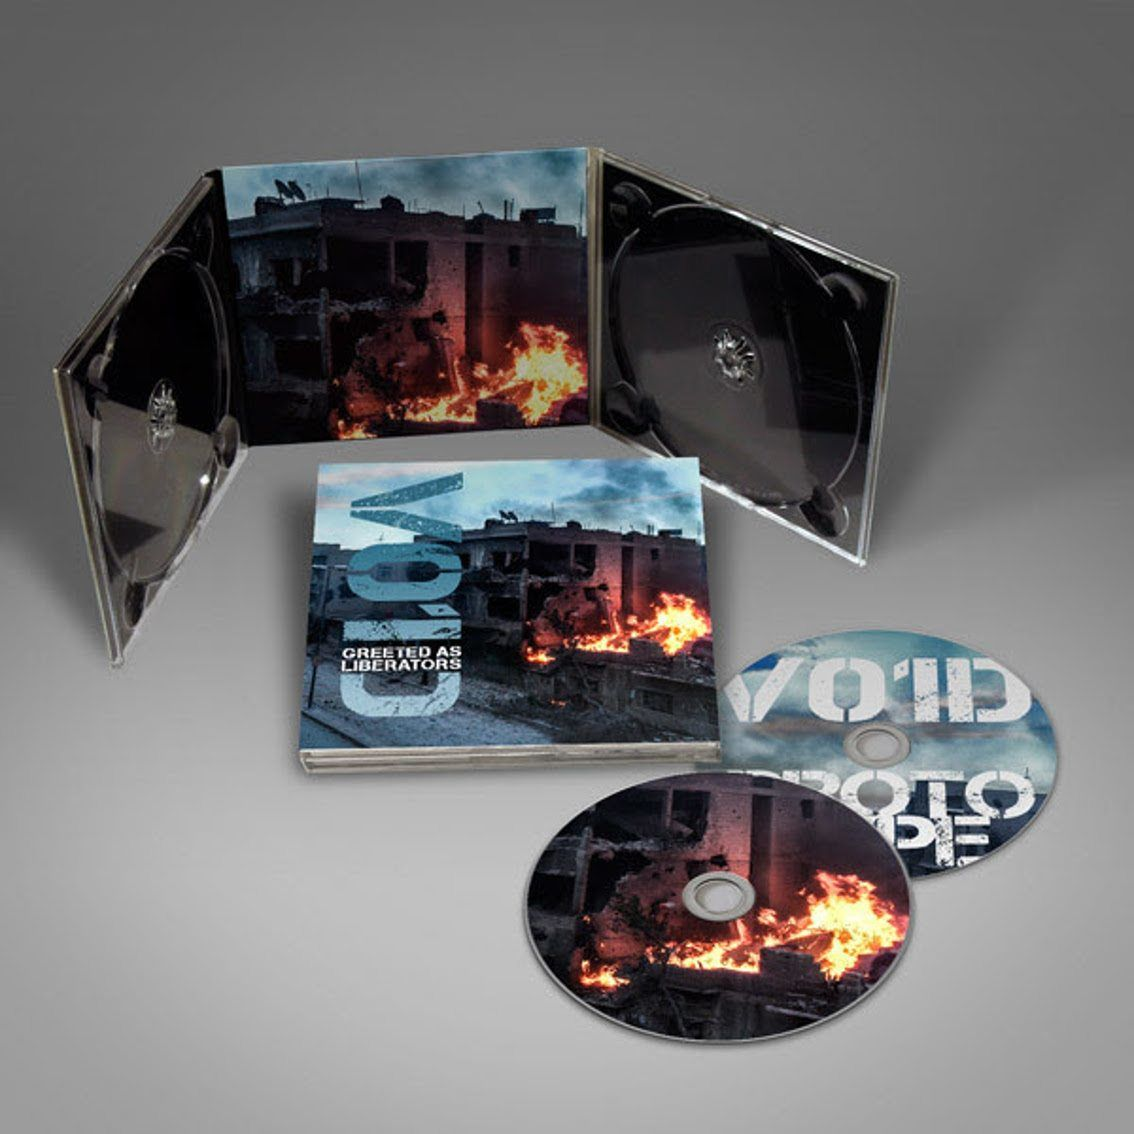 V01d finally has new album out after 6 years + releases long lost 1st album as bonus disc